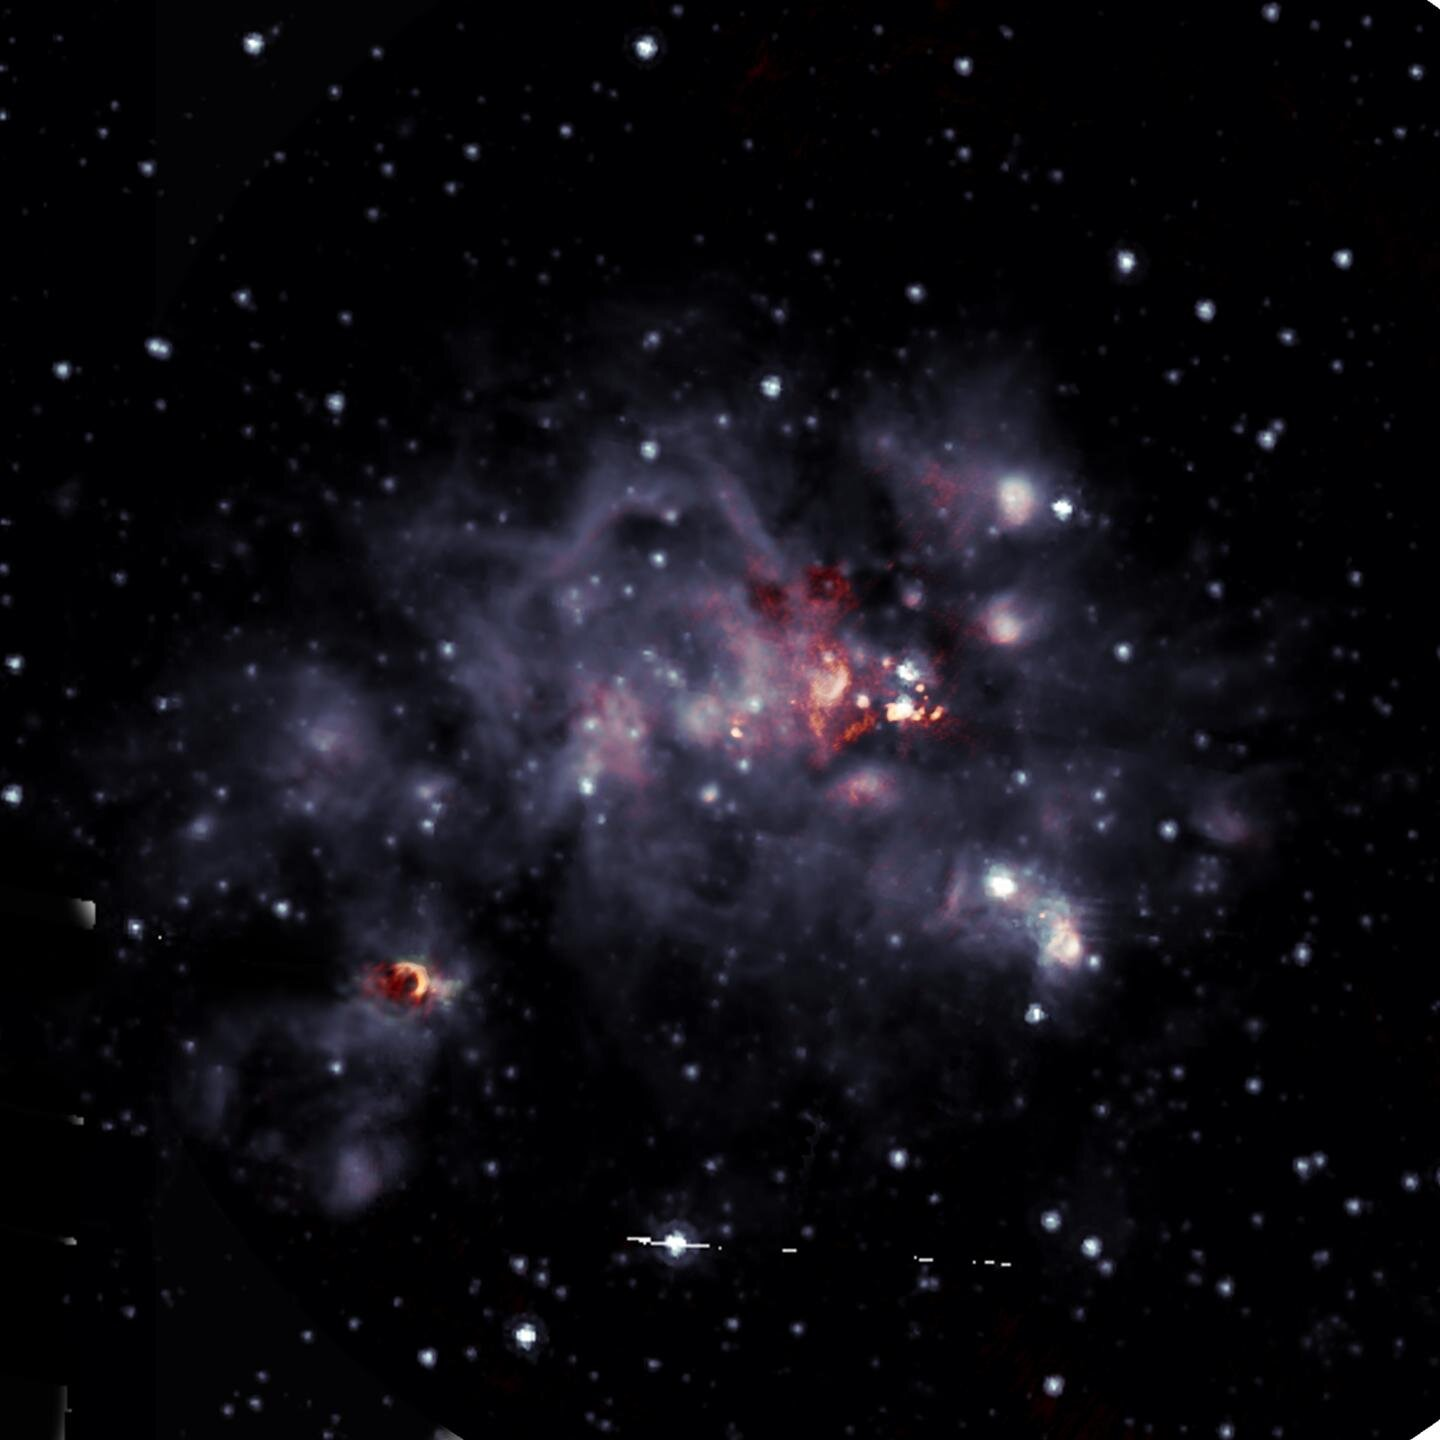 New look at a bright stellar nursery